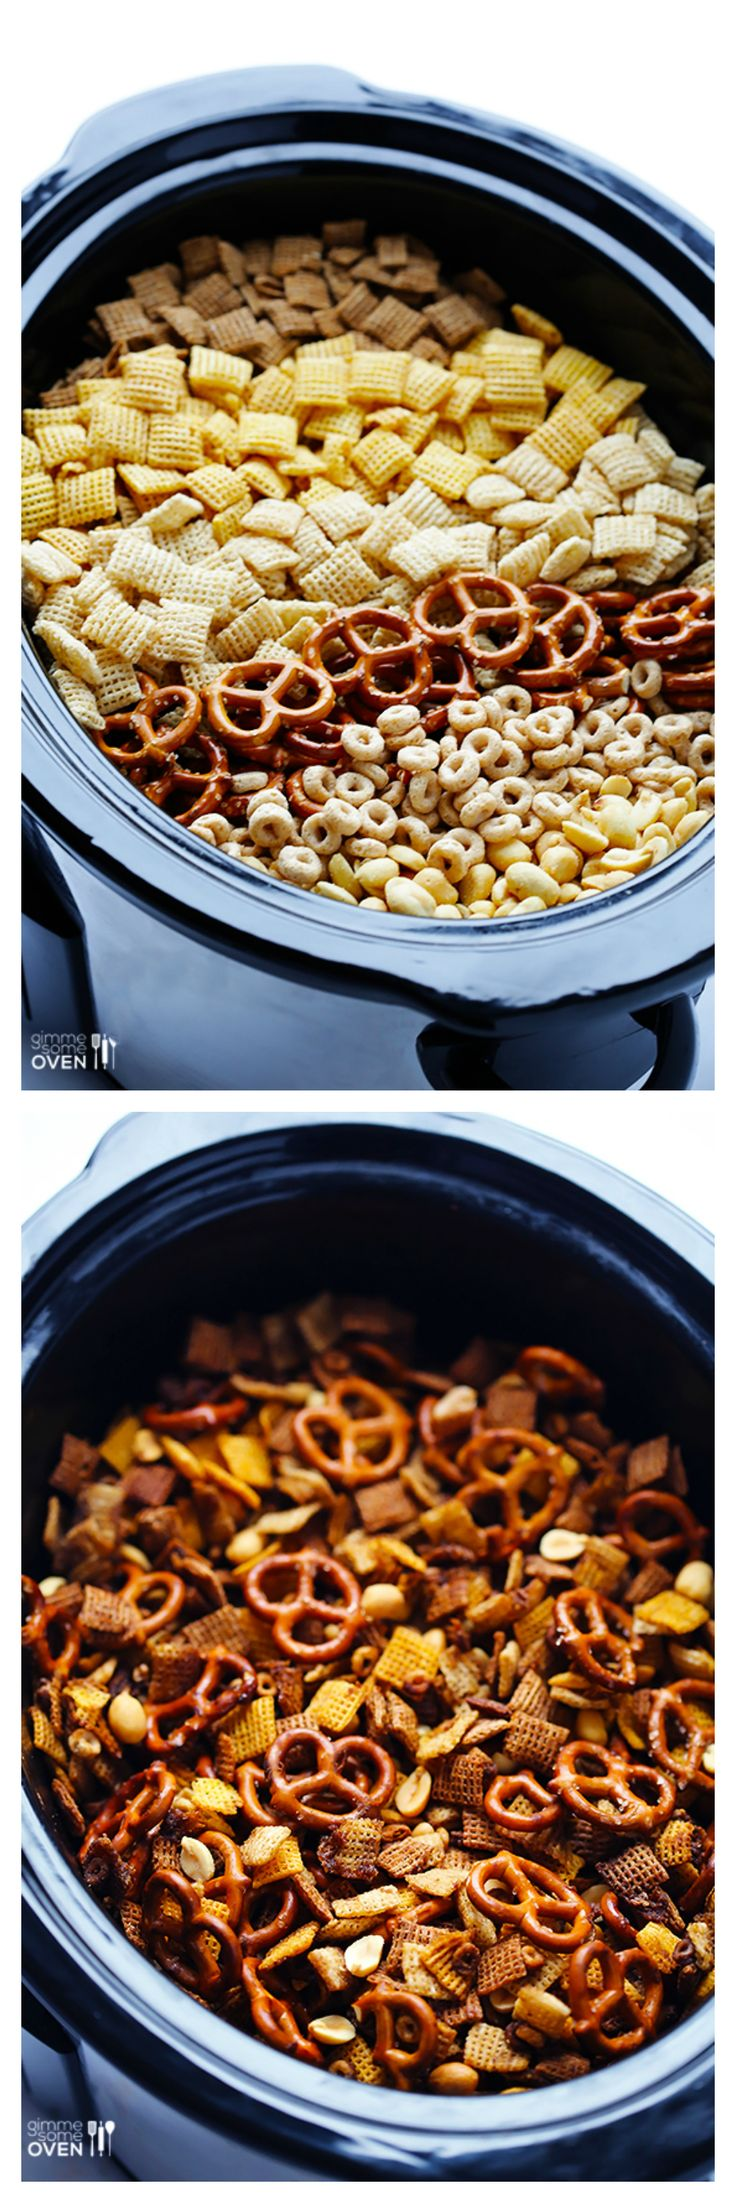 online store fashion Slow Cooker Chex Mix    the classic mix you love  made in your crock pot    gimmesomeoven com  slowcooker  crockpot